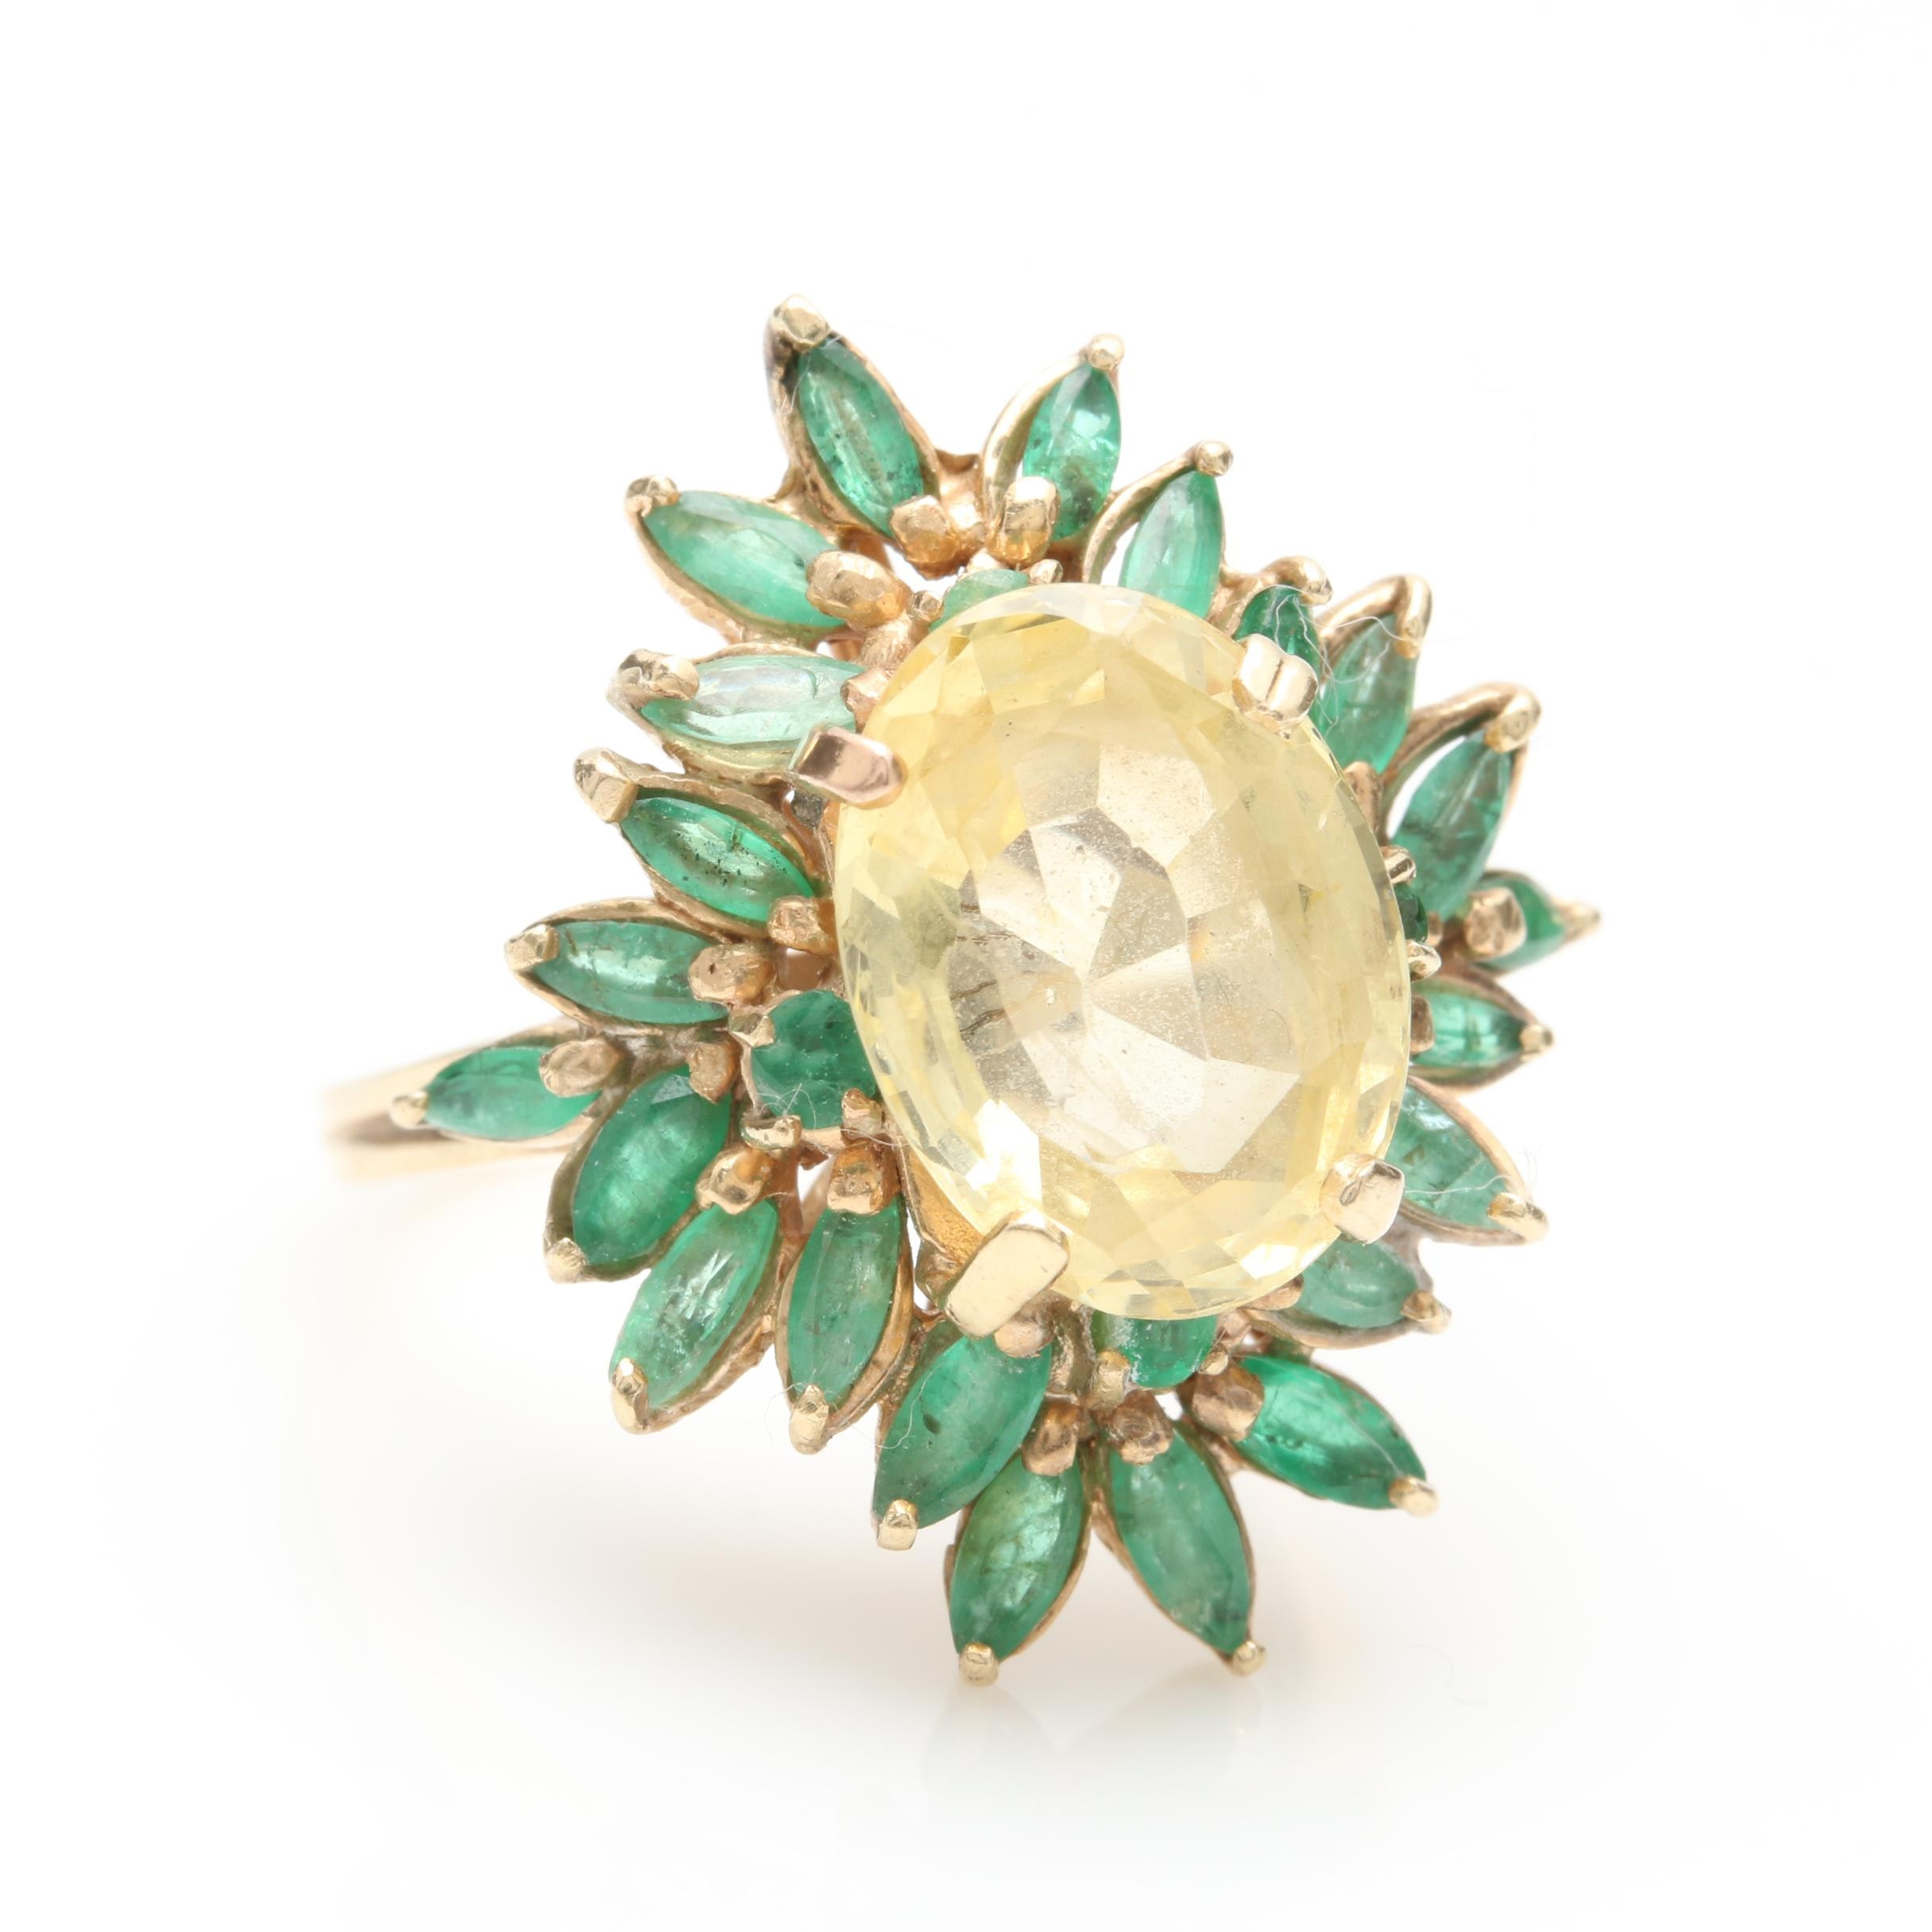 14K Yellow Gold 4.23 CT Yellow Sapphire and Emerald Ring